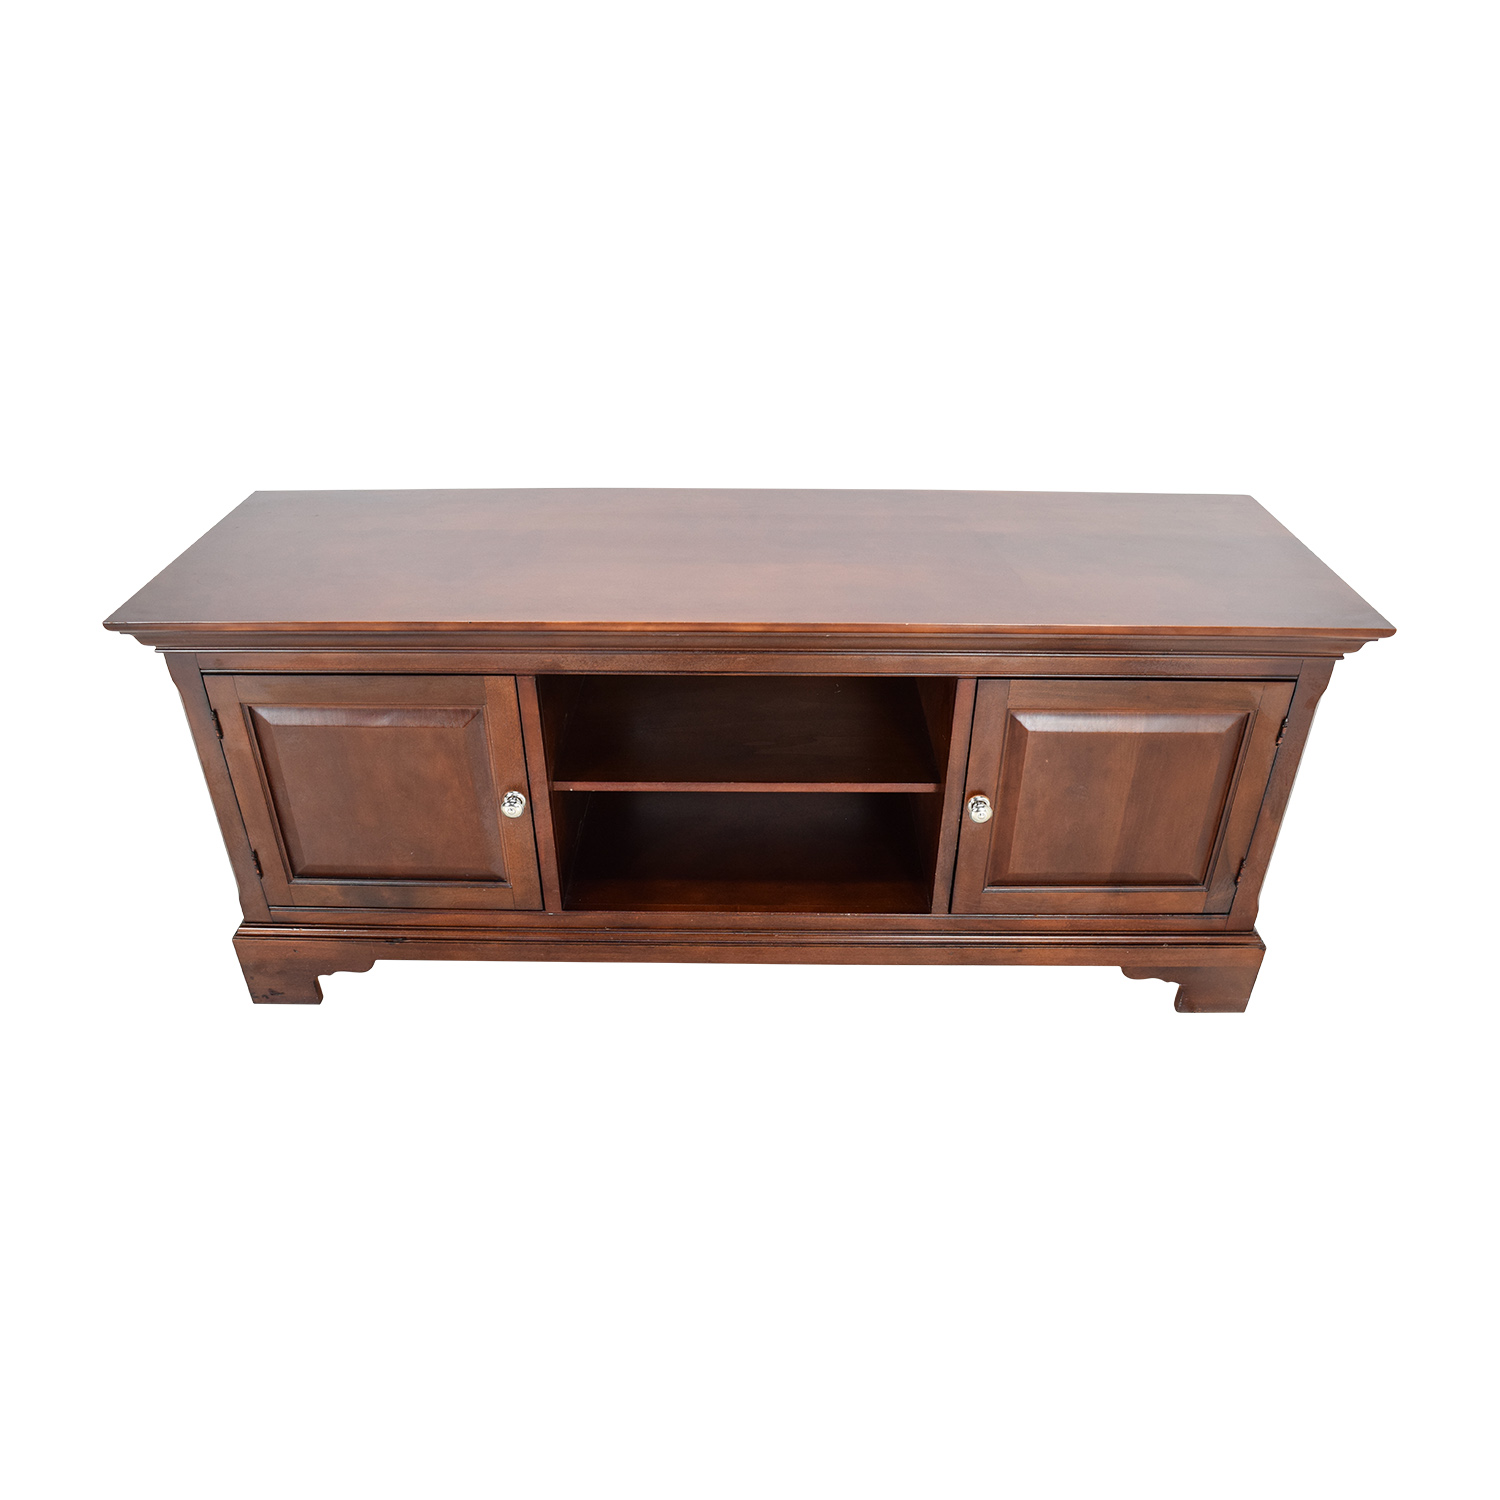 Macys Credenza Sideboard / Cabinets & Sideboards